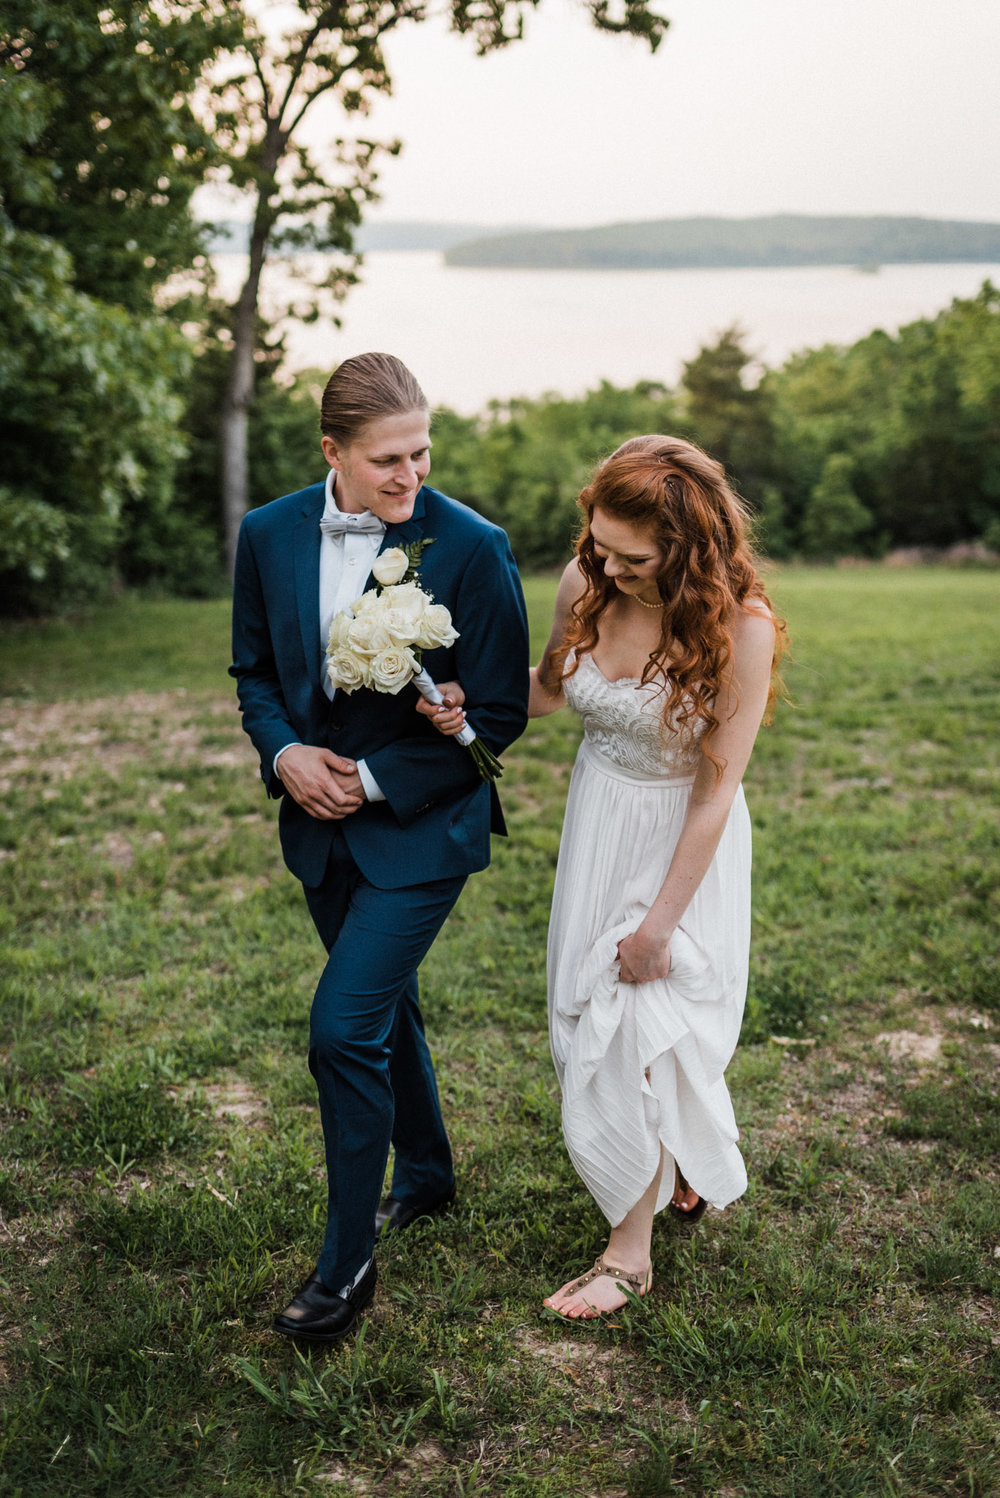 Olivia & Blake Norfork Lake Wedding - Tanner Burge Photography